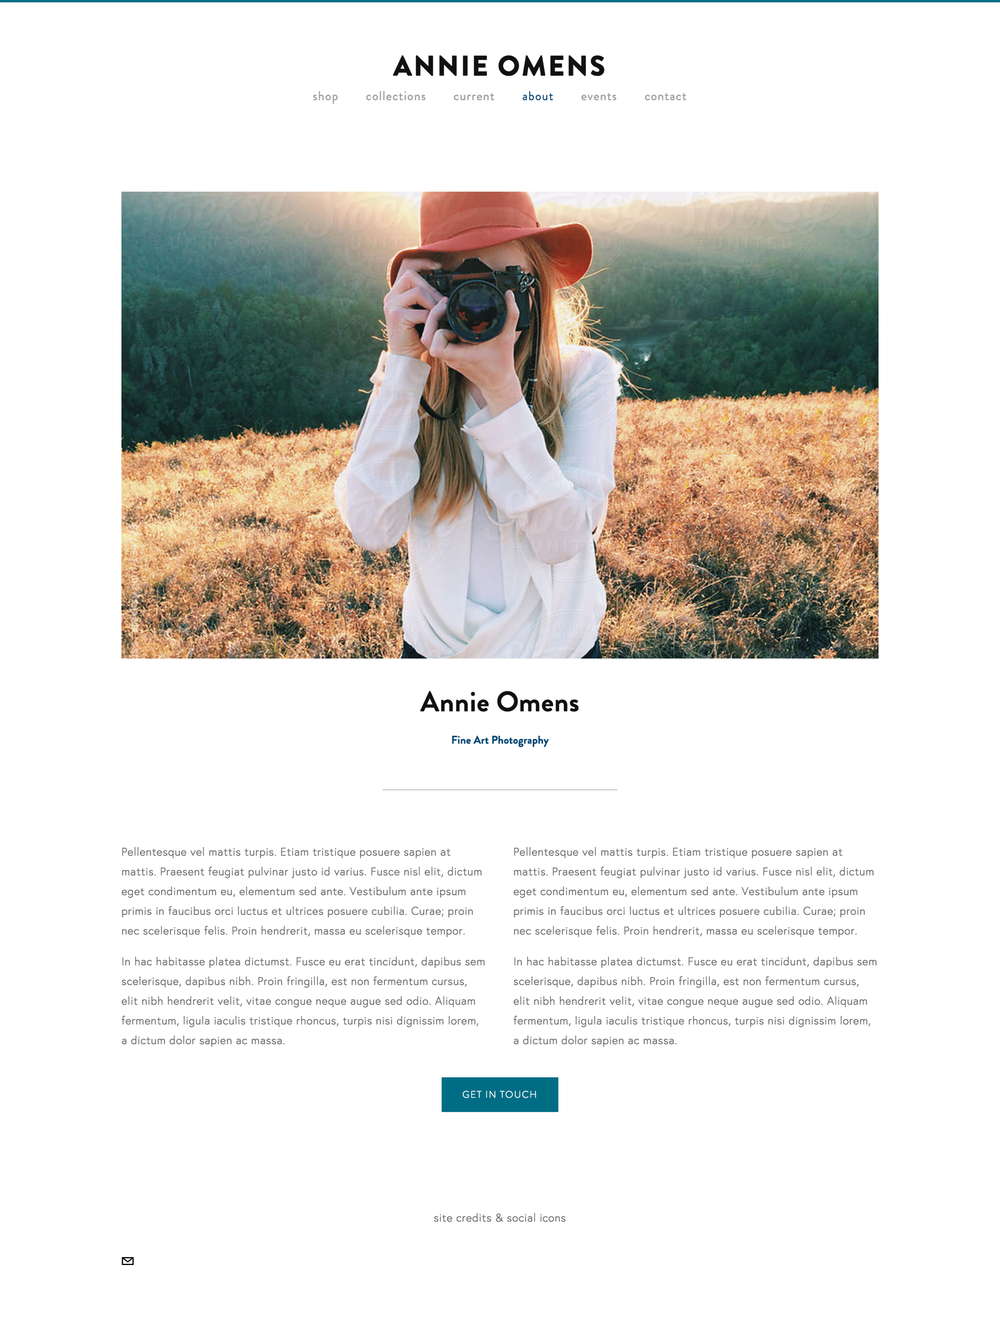 About page design idea by Sarah Moon. #squarespace #webdesign #artistwebsite #photographers